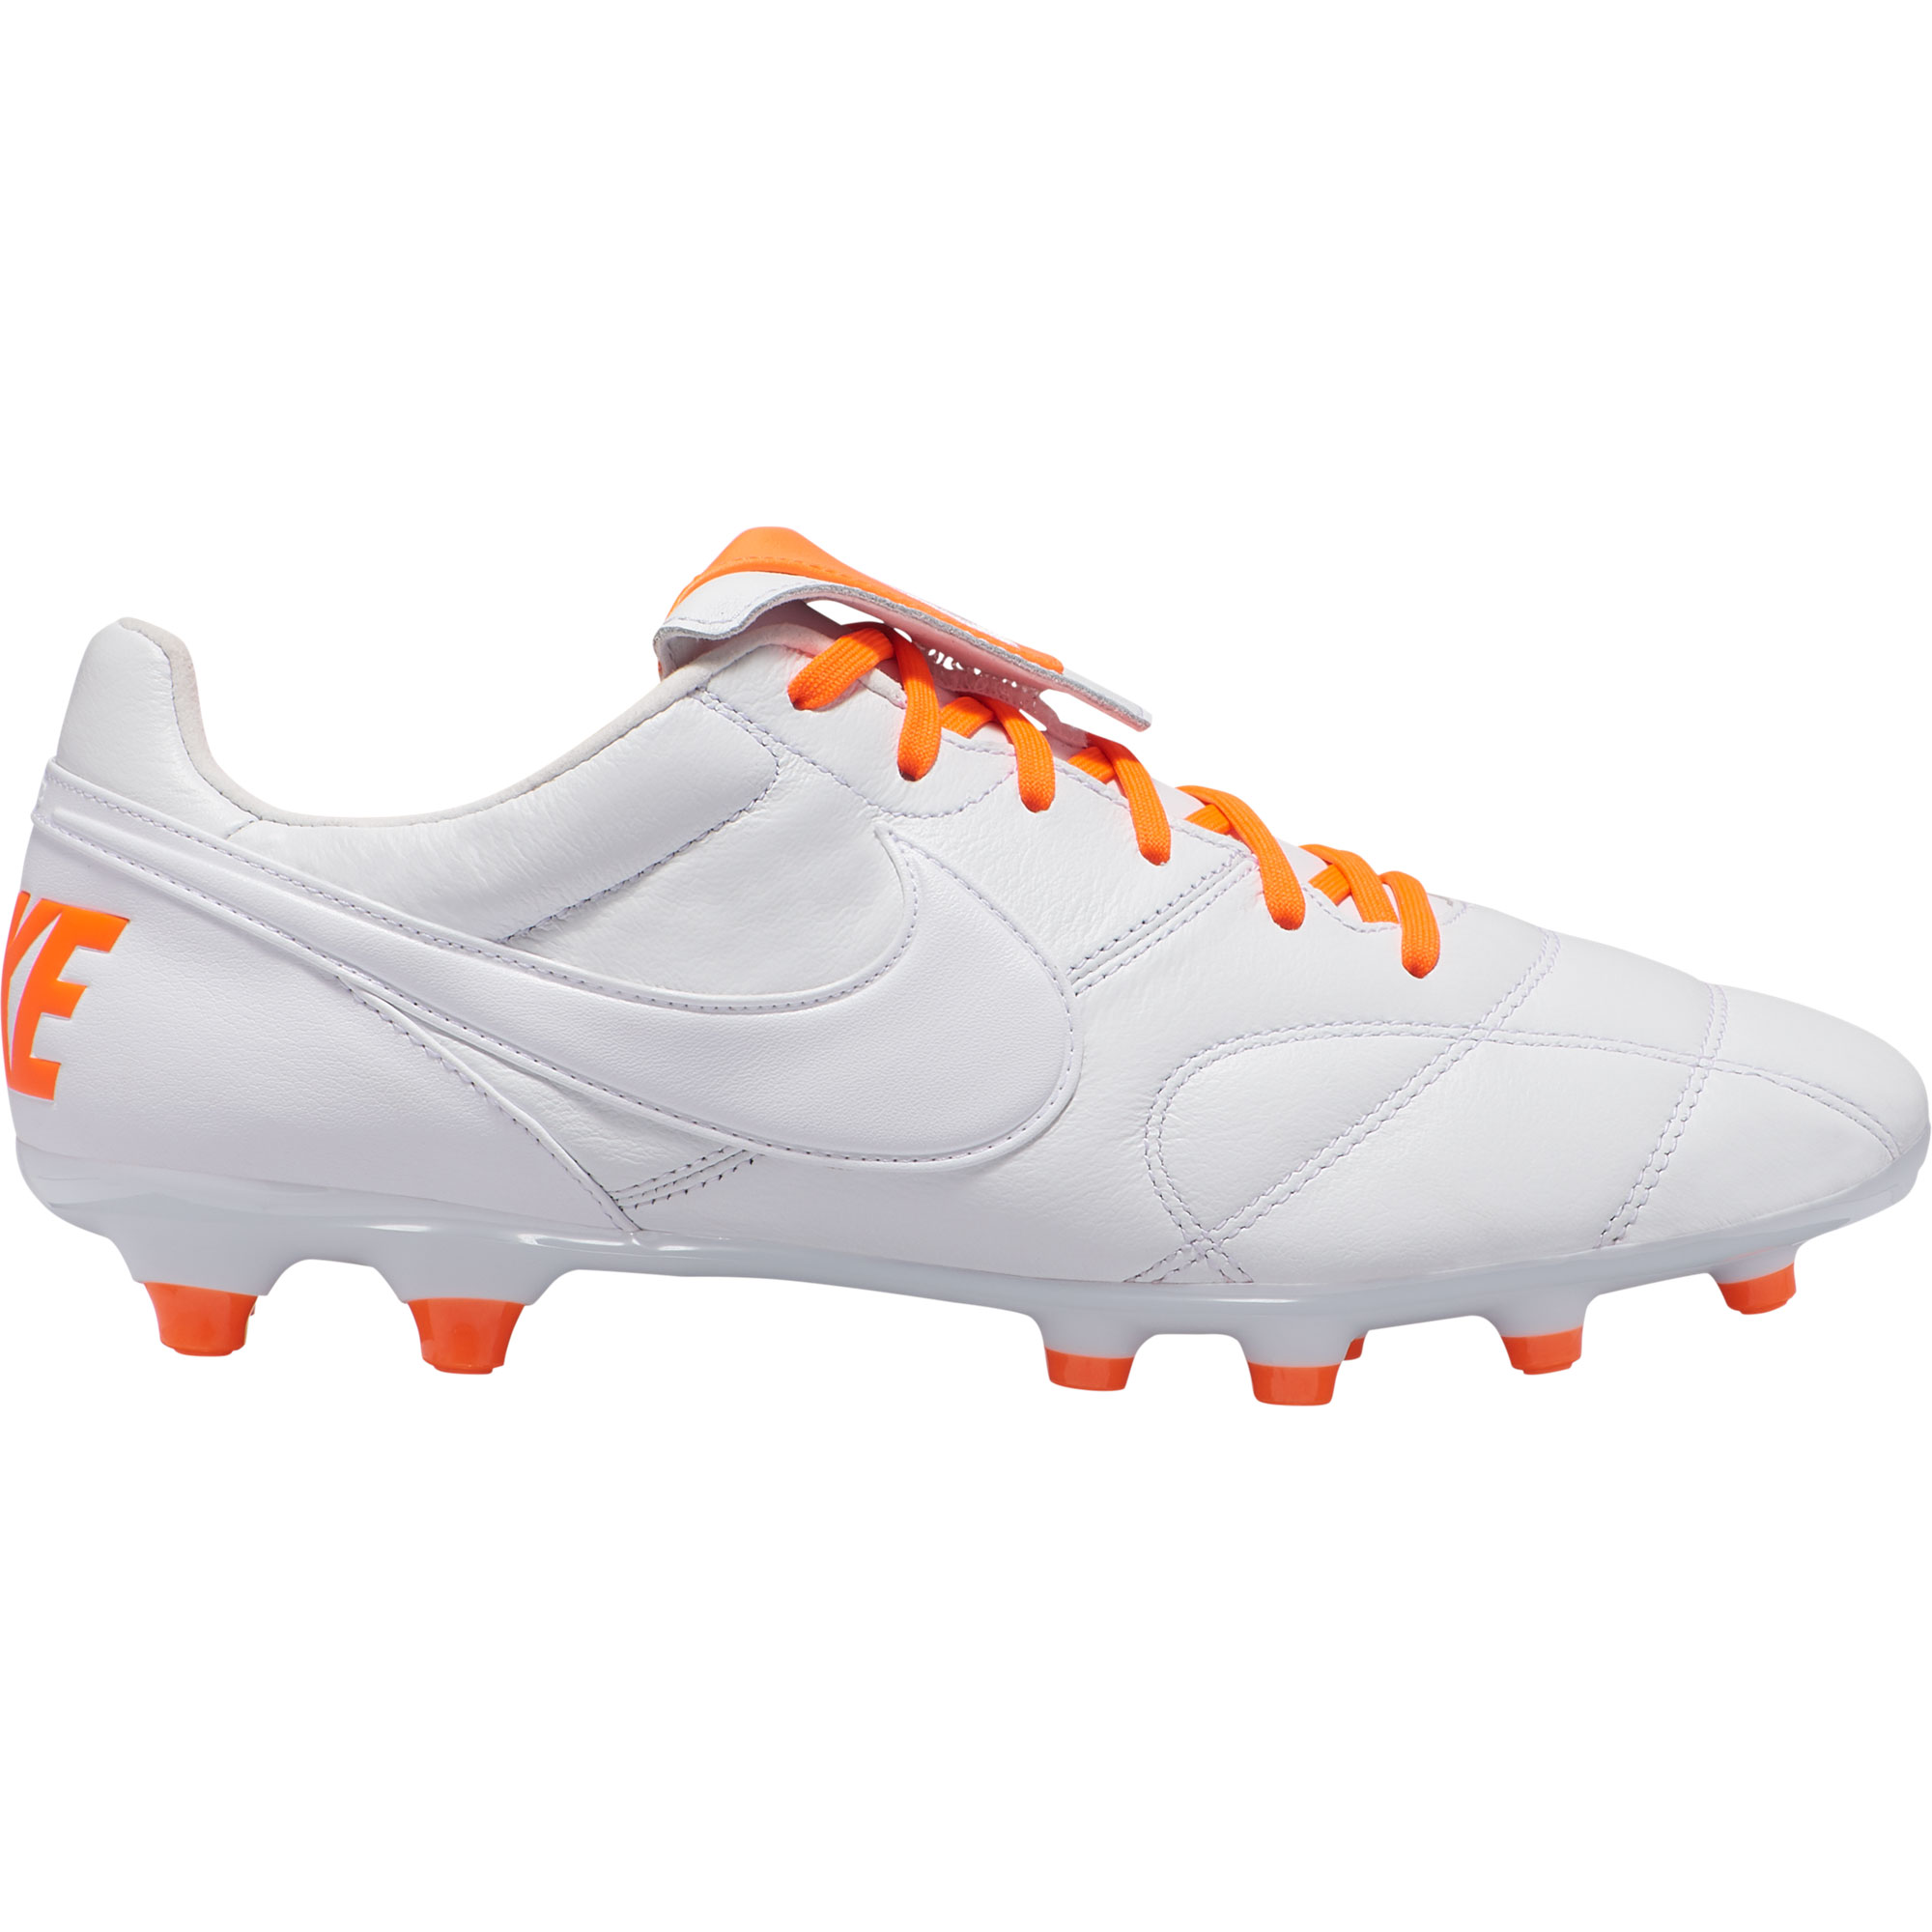 6ab429d7f Nike Premier Football Boots | Cheap leather boot | FOOTY.COM